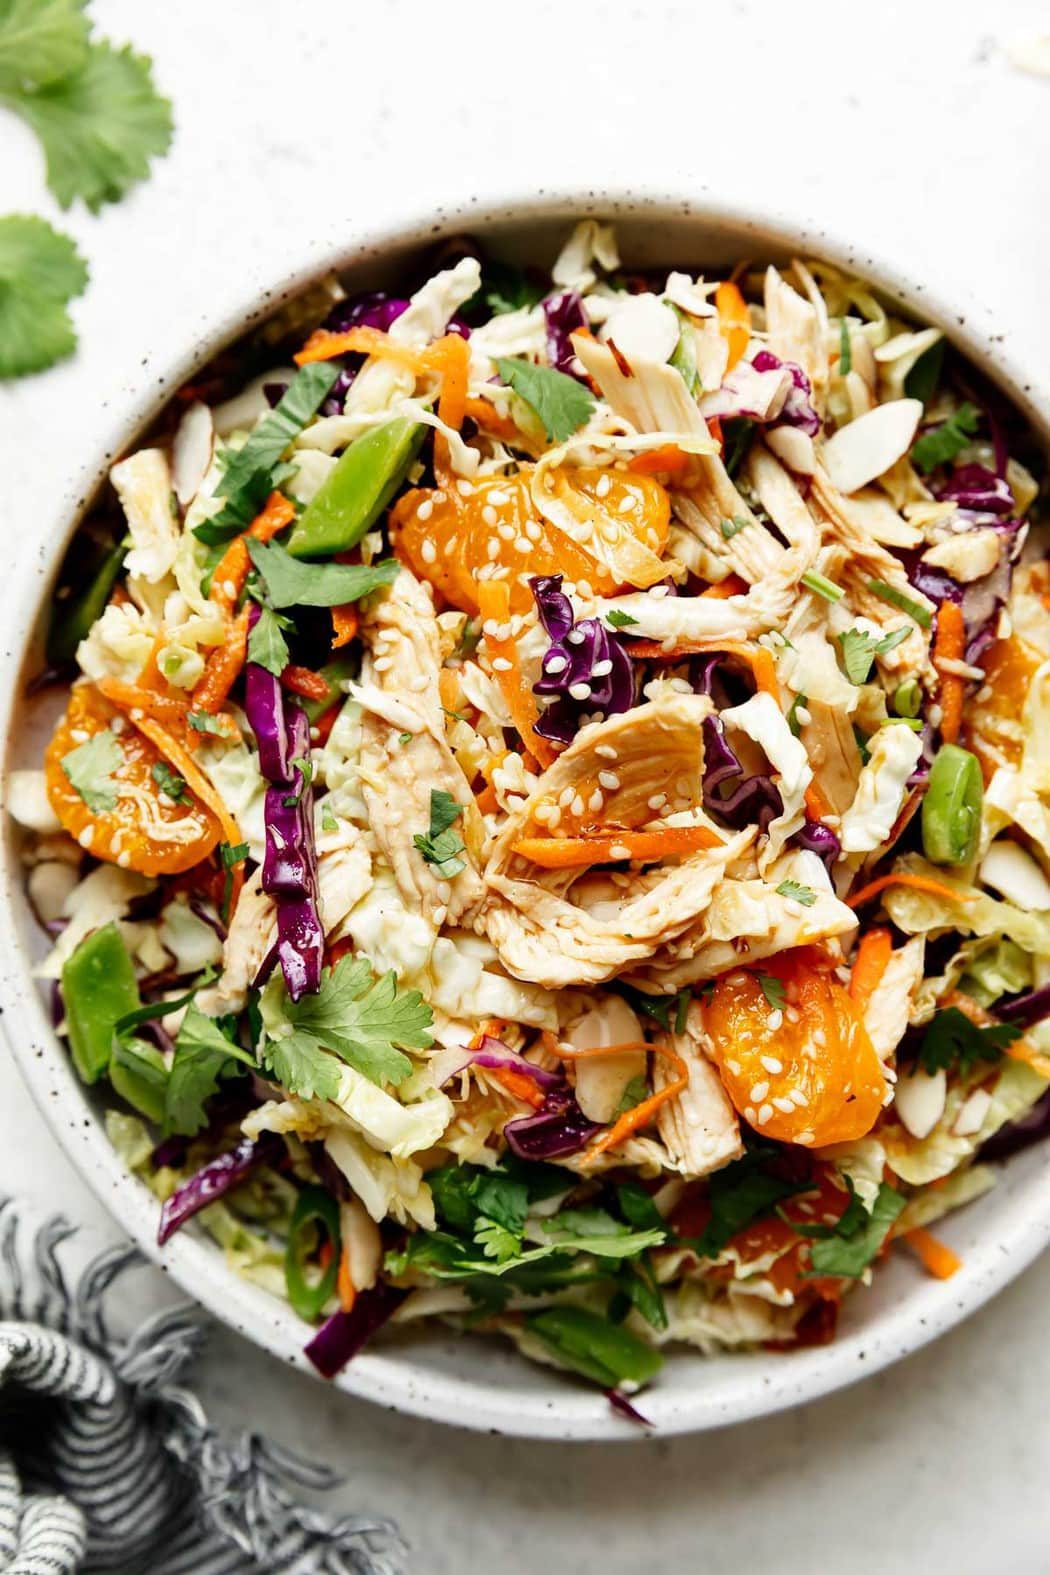 Overhead view of Chinese chicken salad topped with chicken, sesame seeds, purple cabbage, and mandarin oranges.